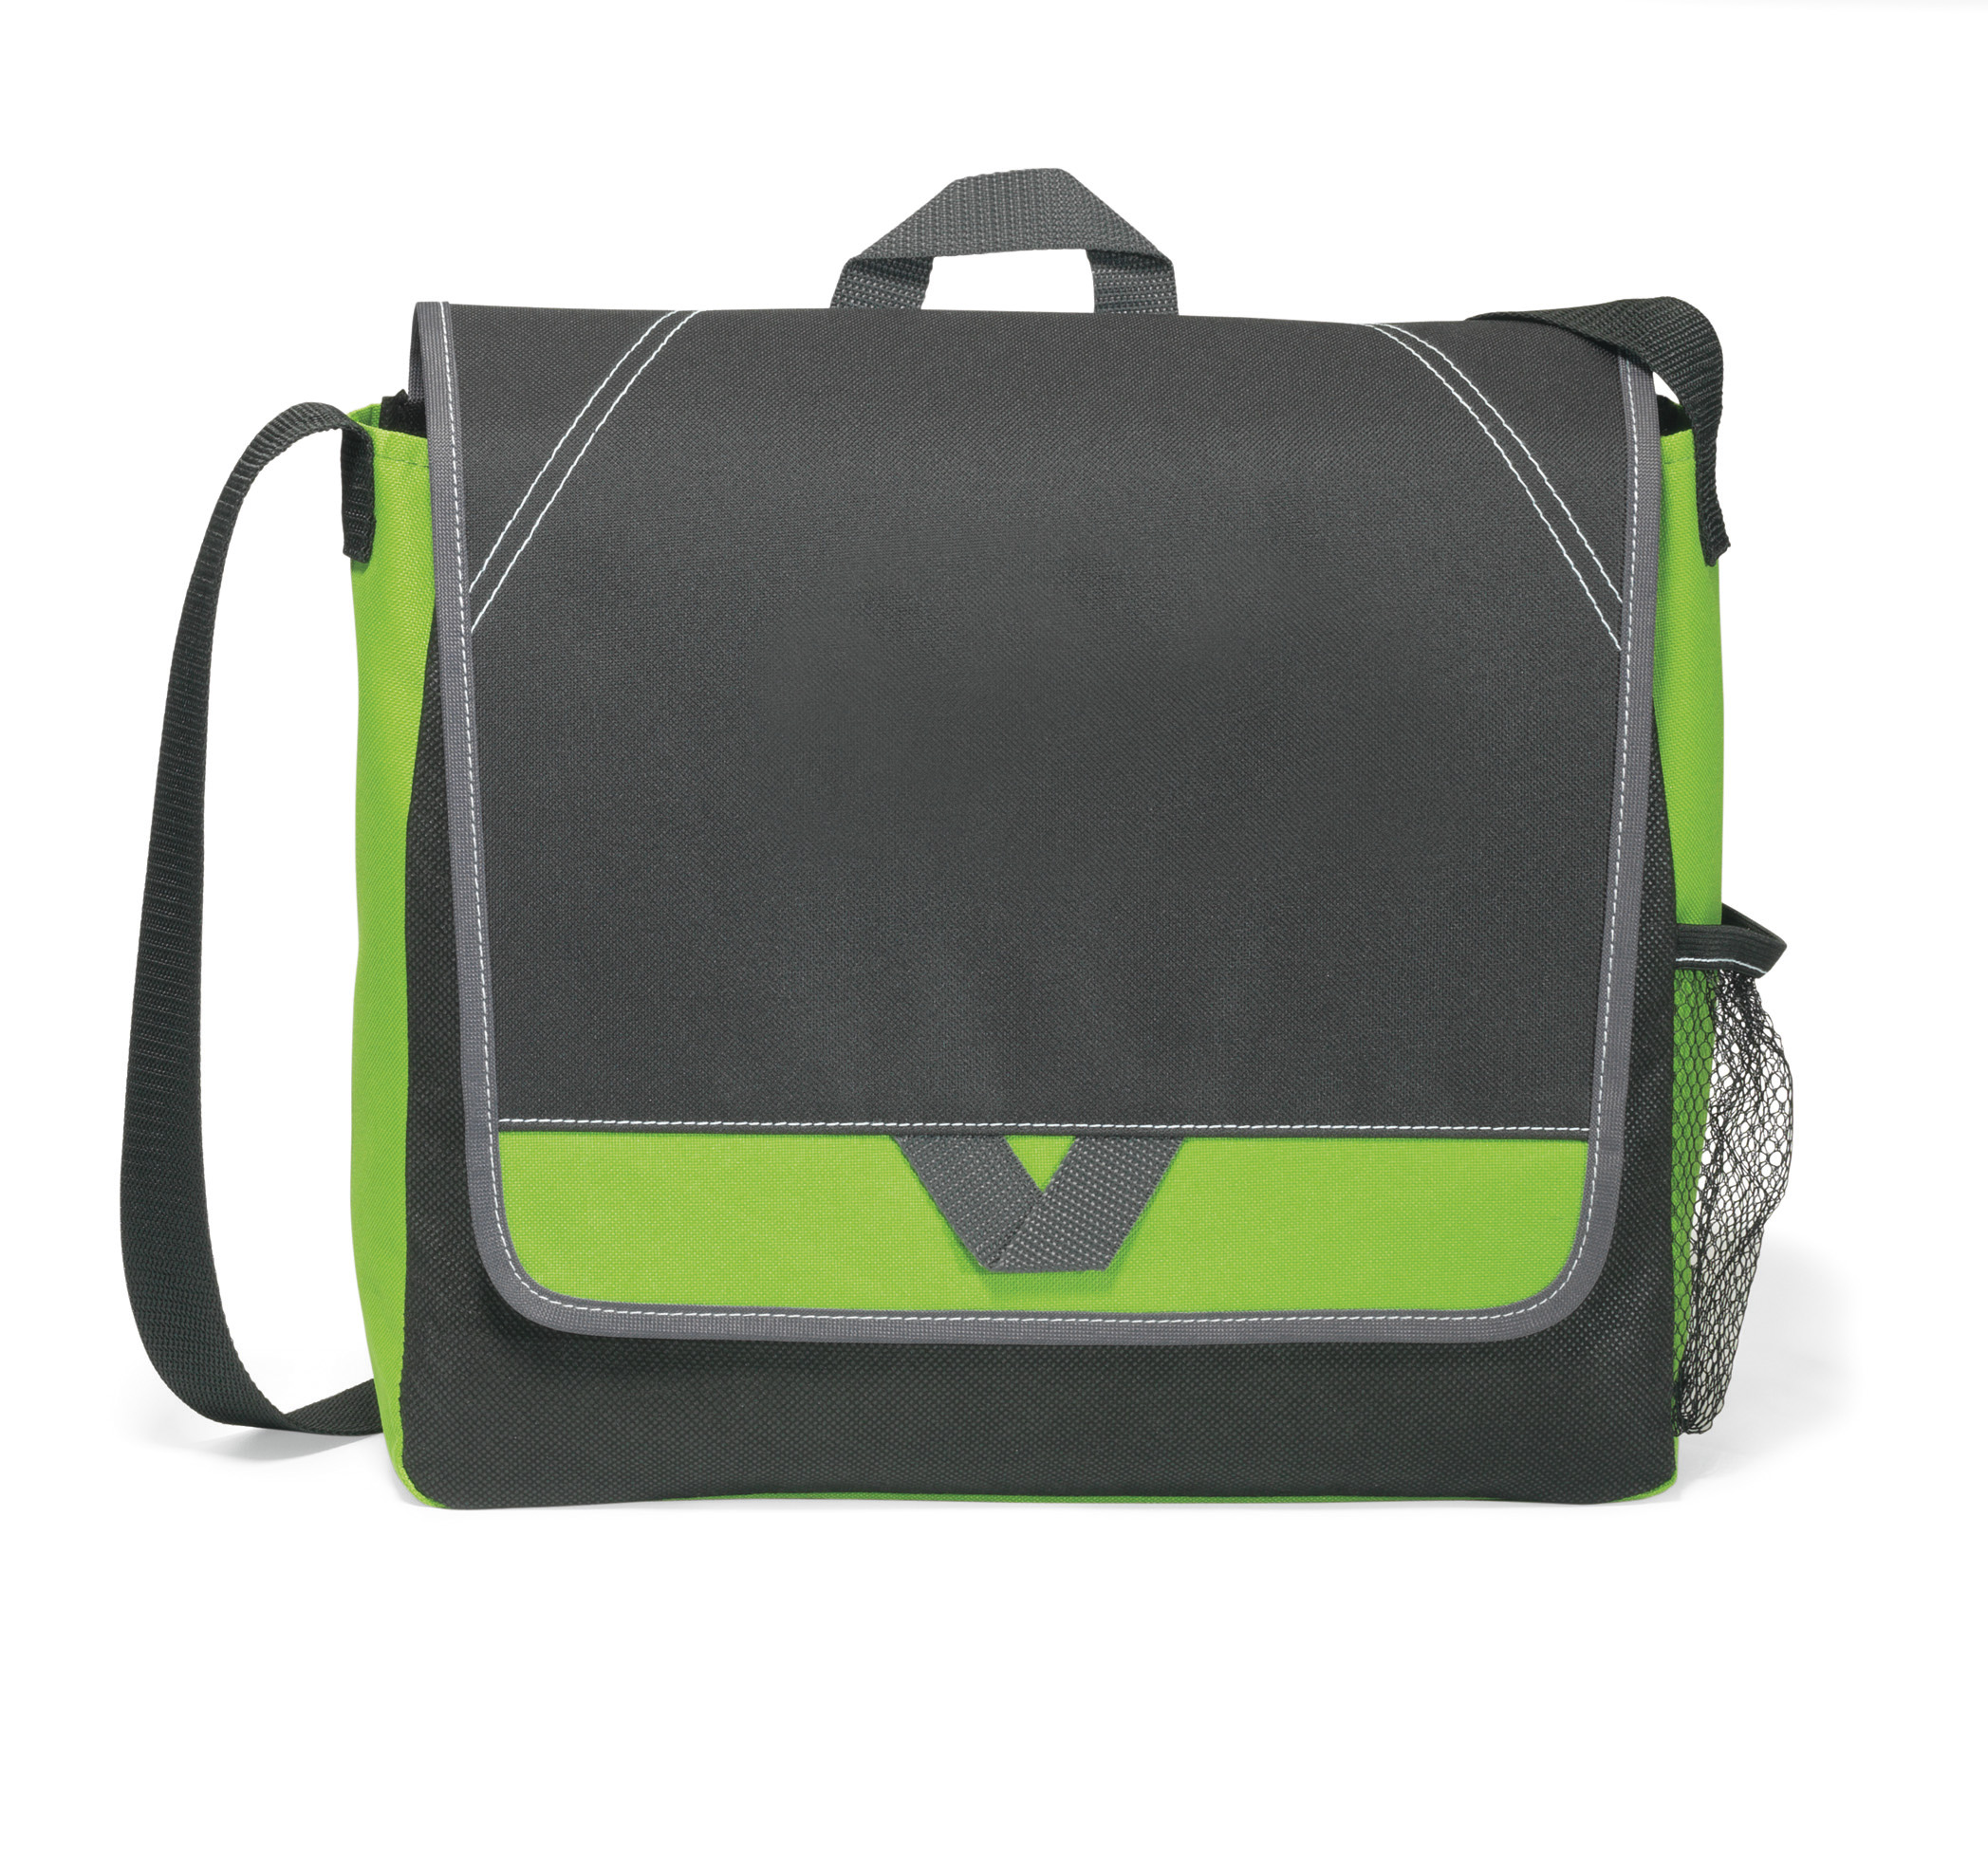 Gemline 2193 - Elation Messenger Bag